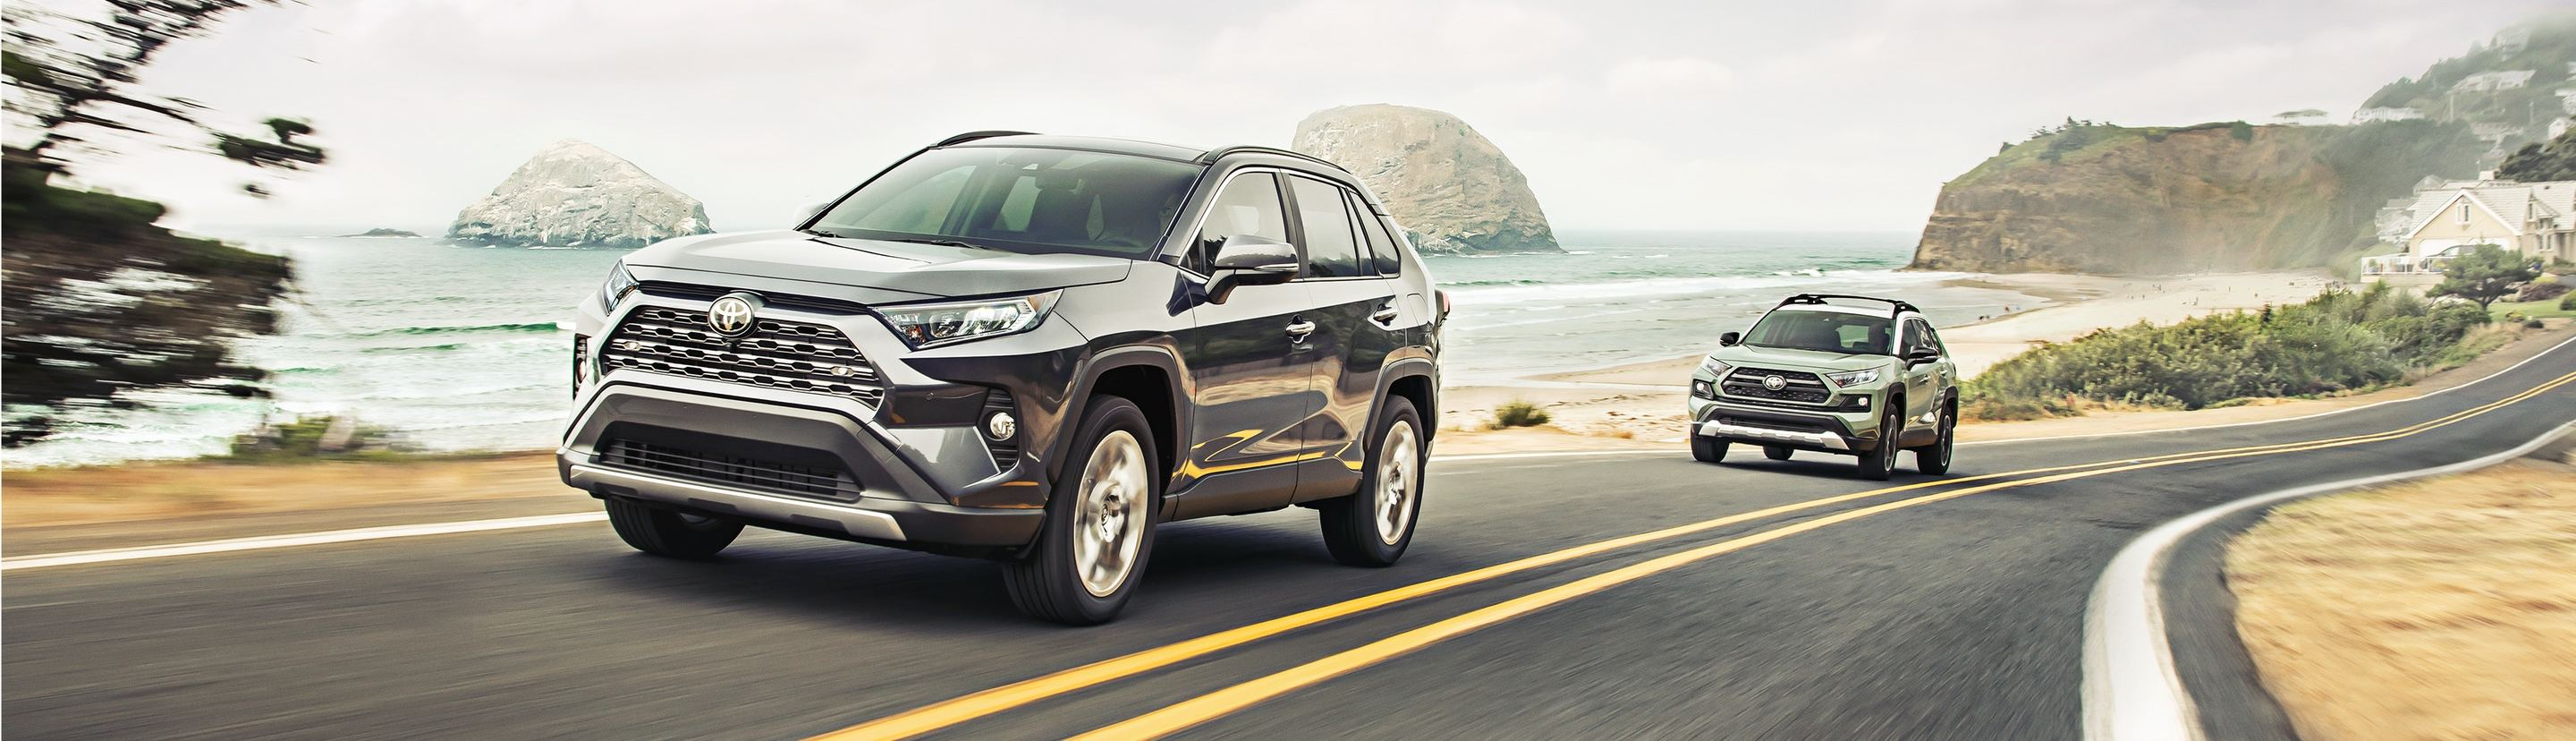 2019 Toyota RAV4 for Sale near North Plainfield, NJ